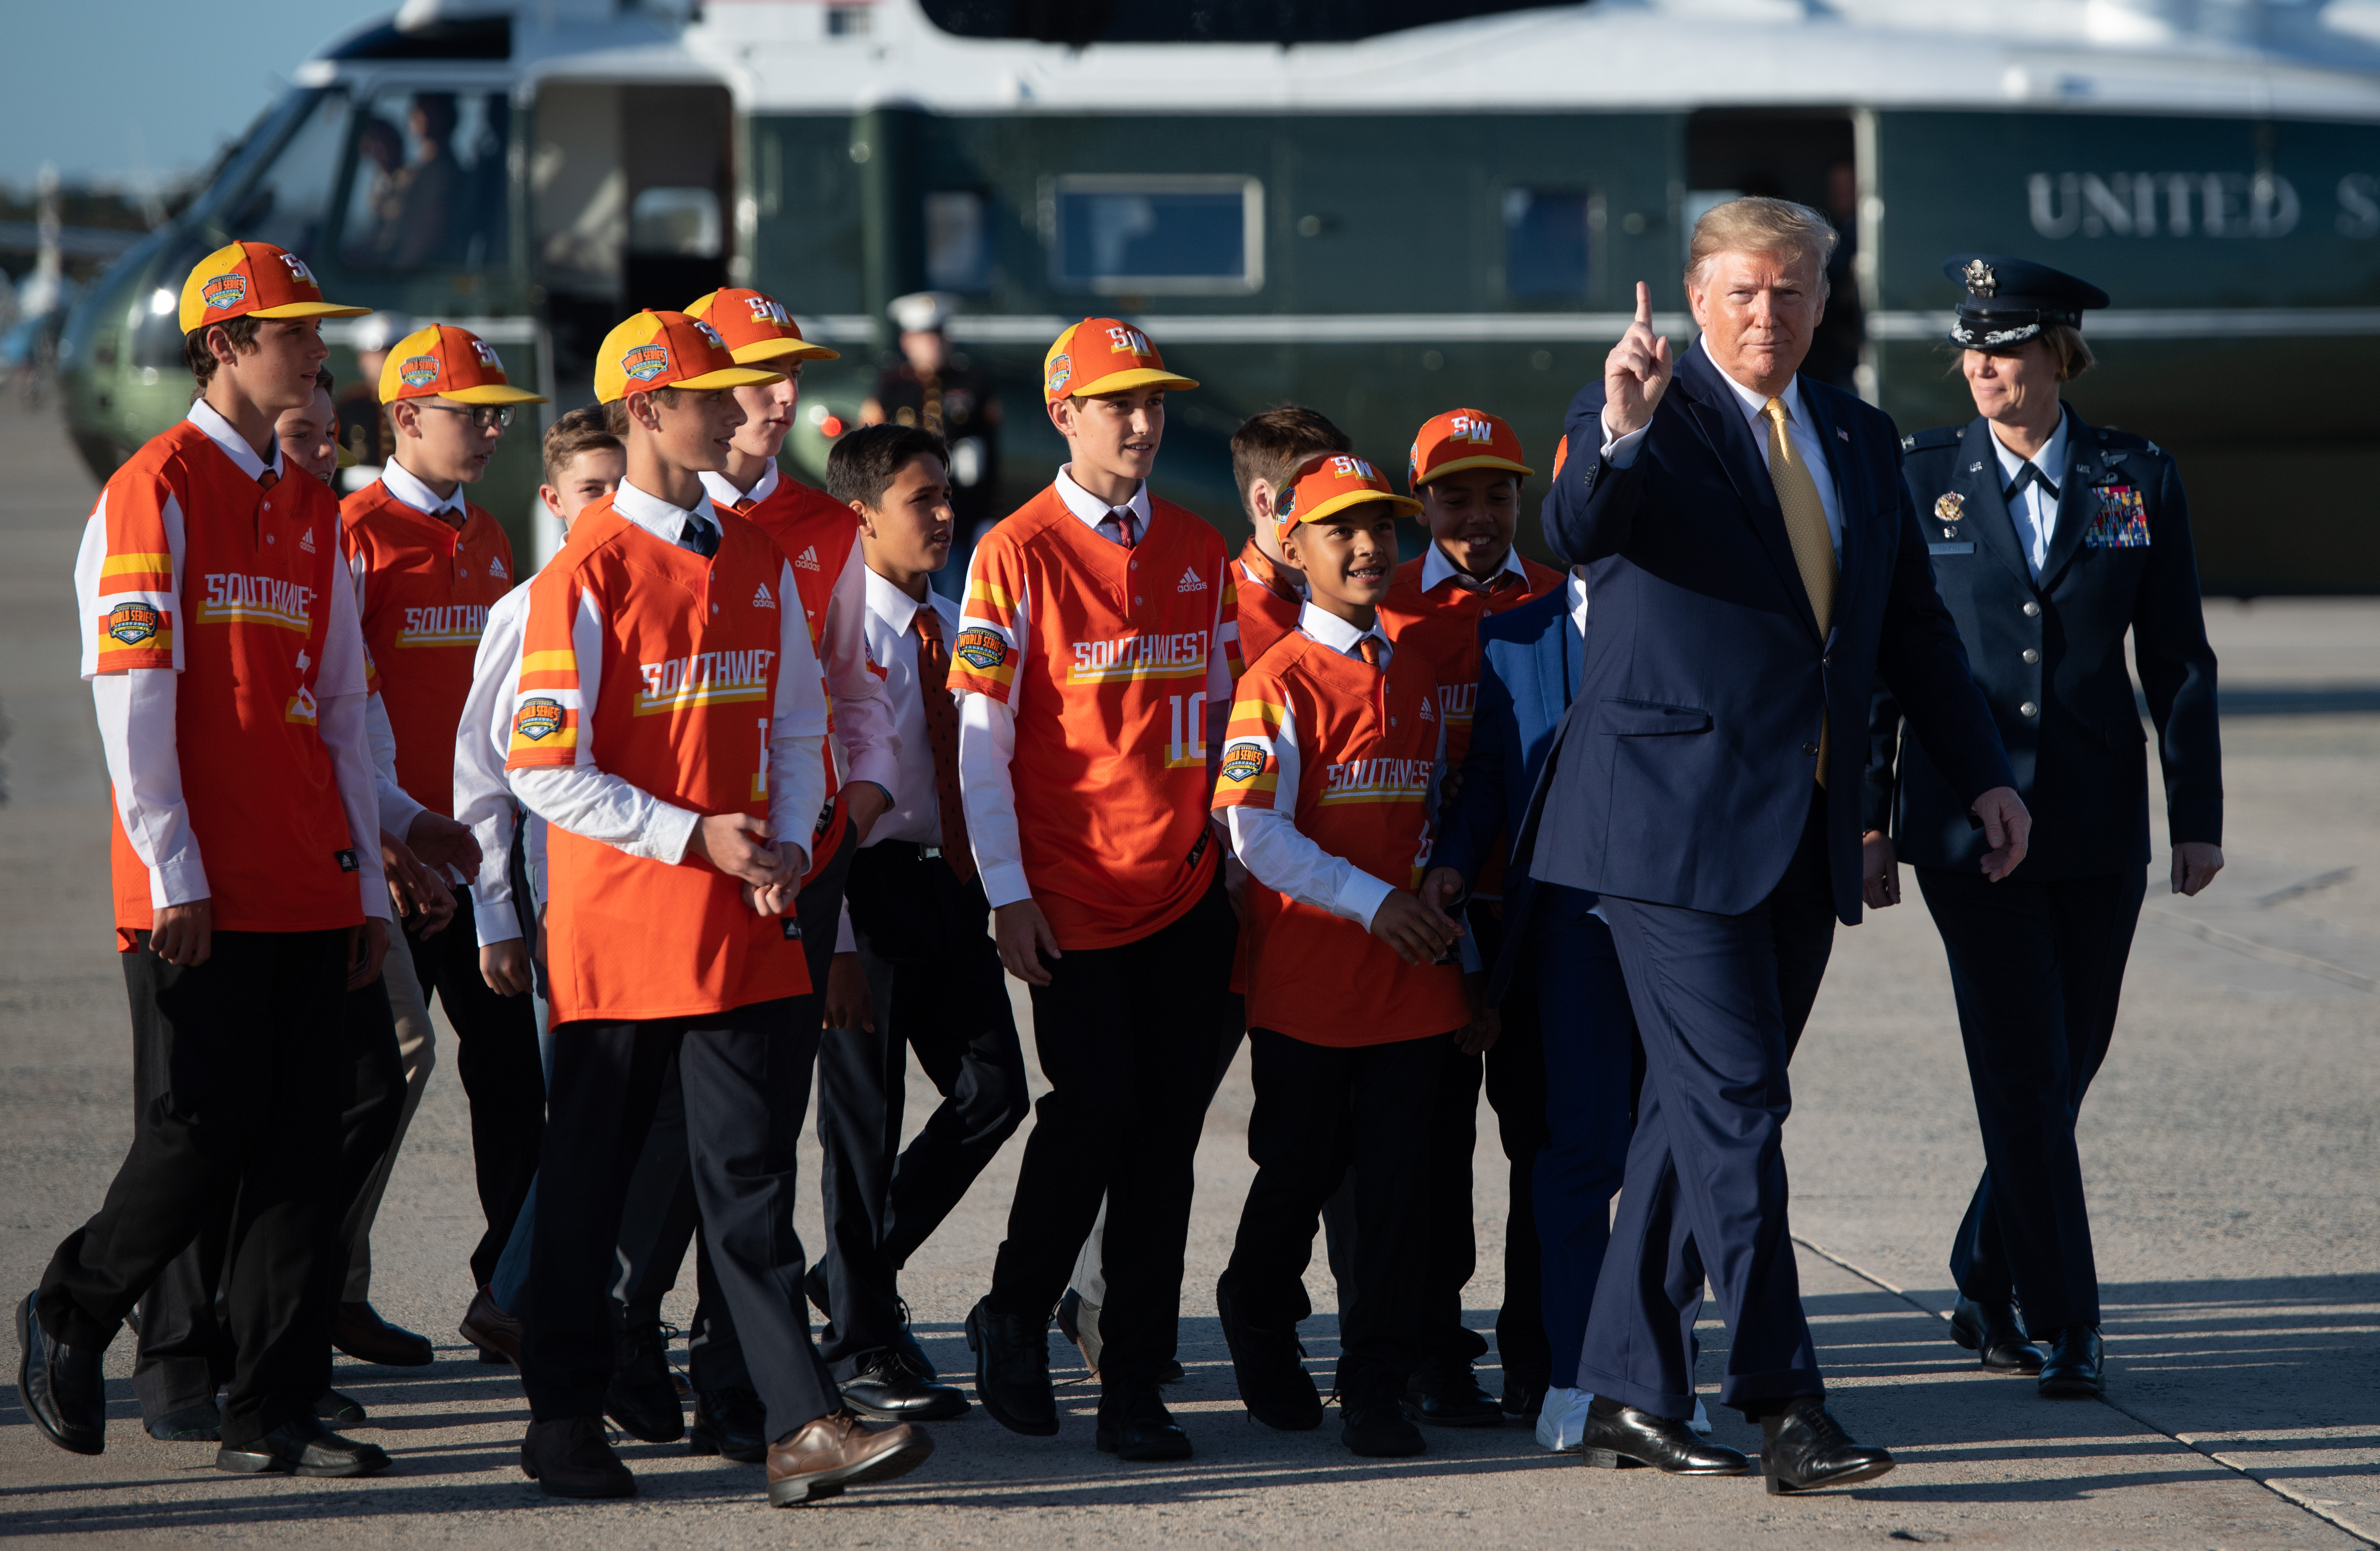 US President Donald Trump walks to board Air Force One with members of the Little League World Championship baseball team, the Eastbank All Stars of Louisiana, prior to departure from Joint Base Andrews